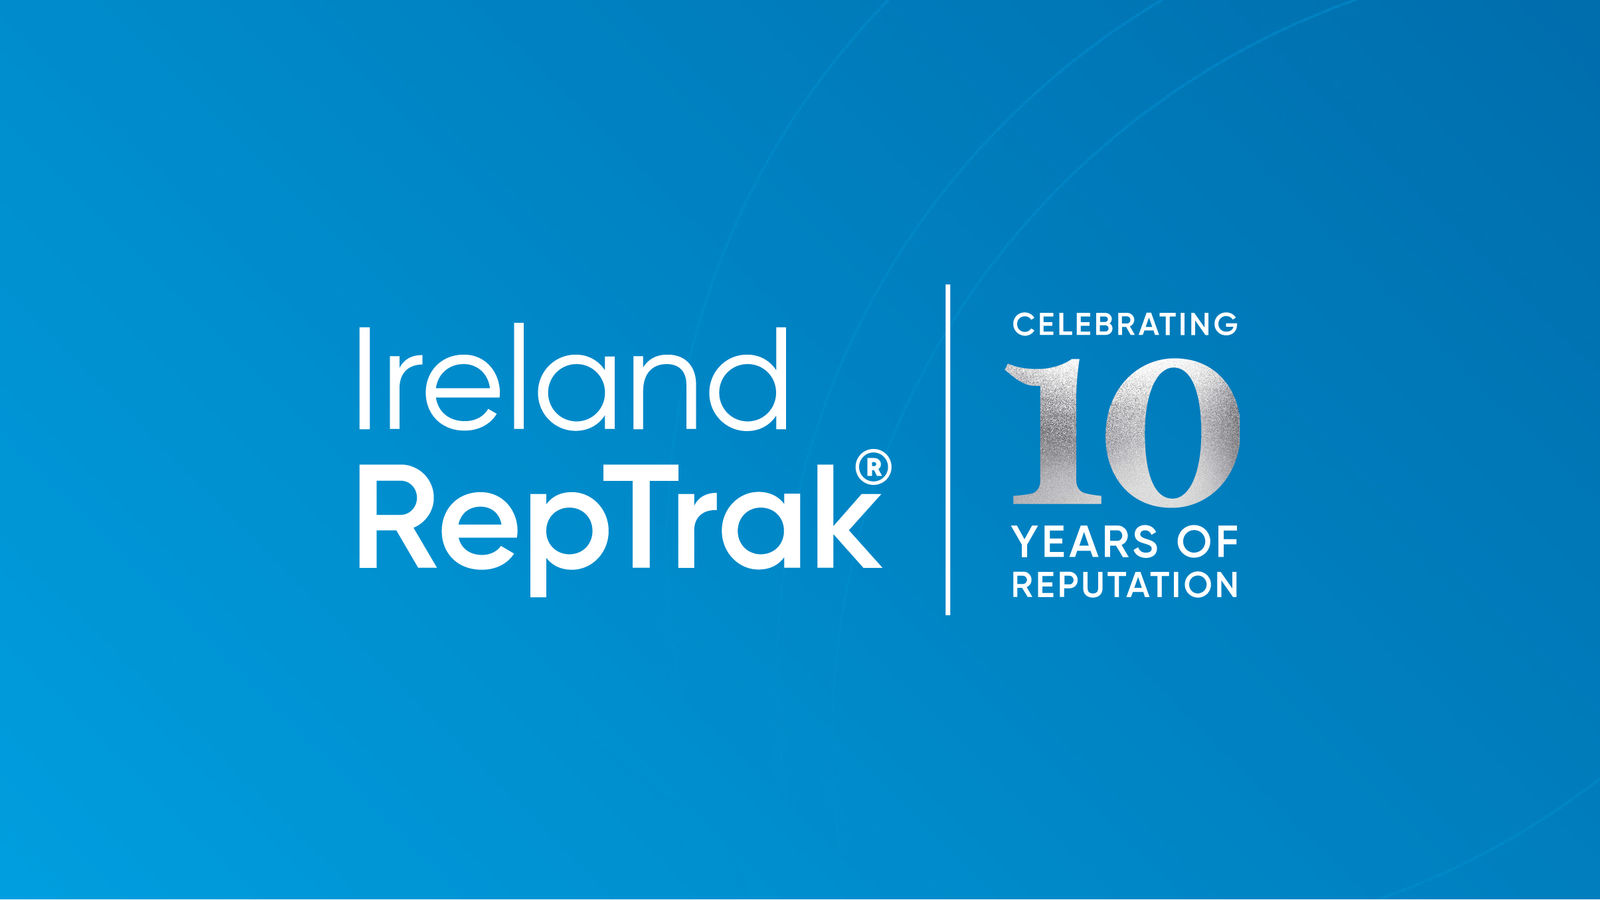 Ireland RepTrak 10 celebrating Years